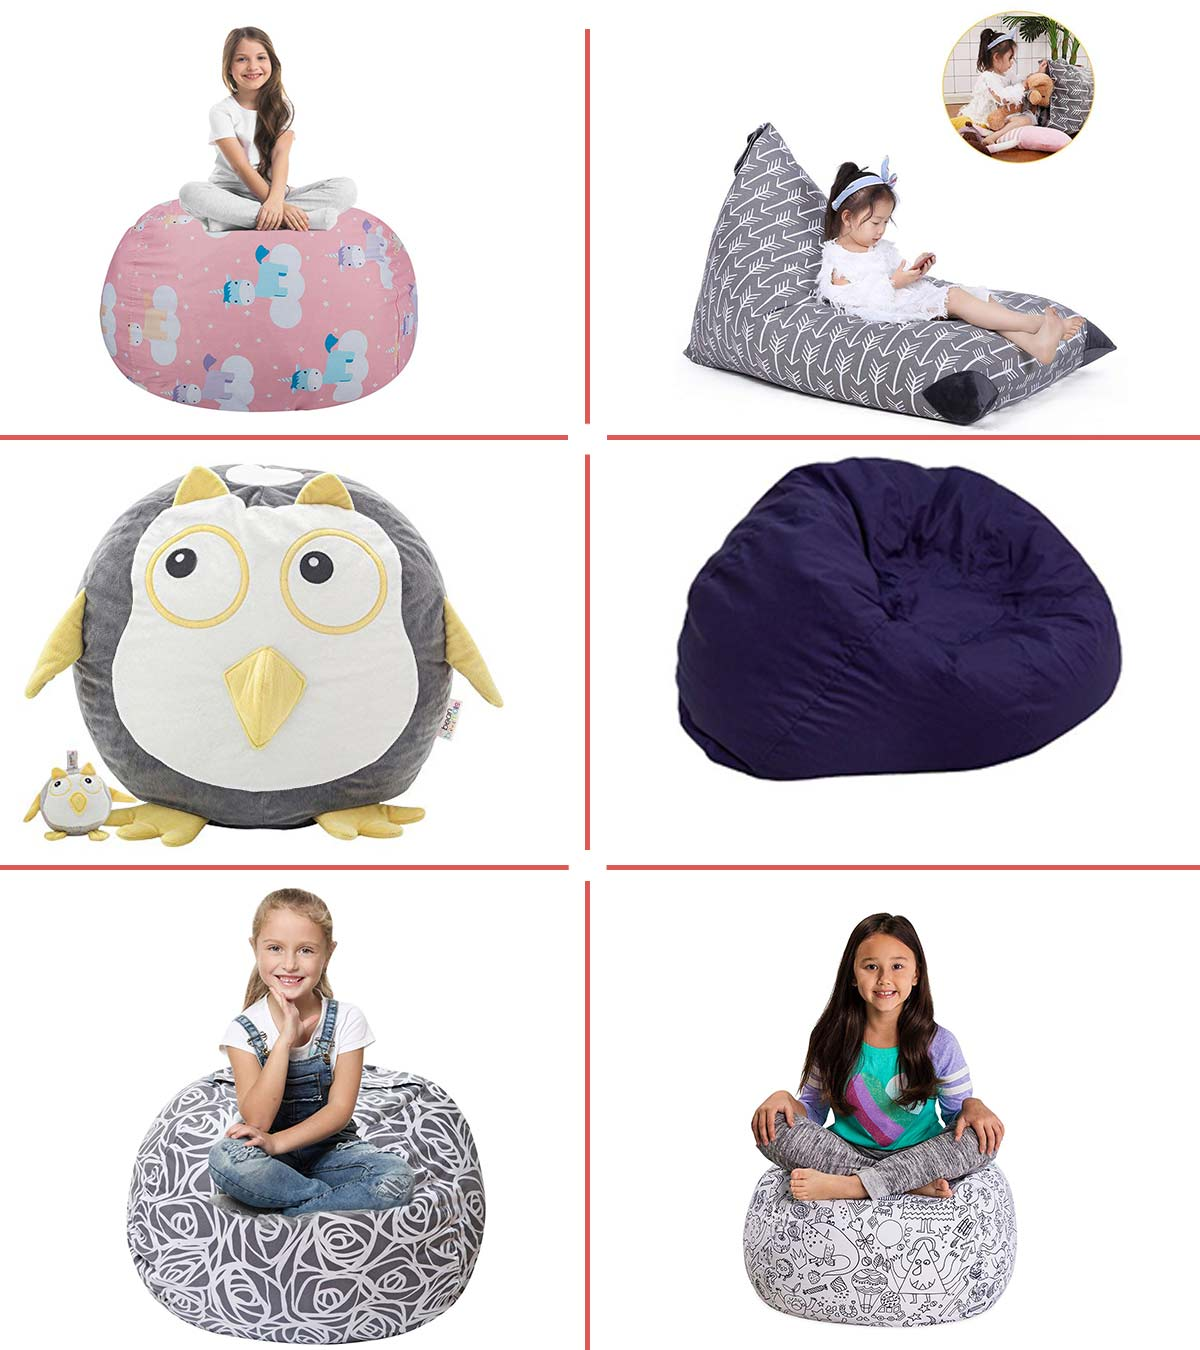 Pleasant 11 Best Bean Bags For Kids To Buy In 2019 Evergreenethics Interior Chair Design Evergreenethicsorg